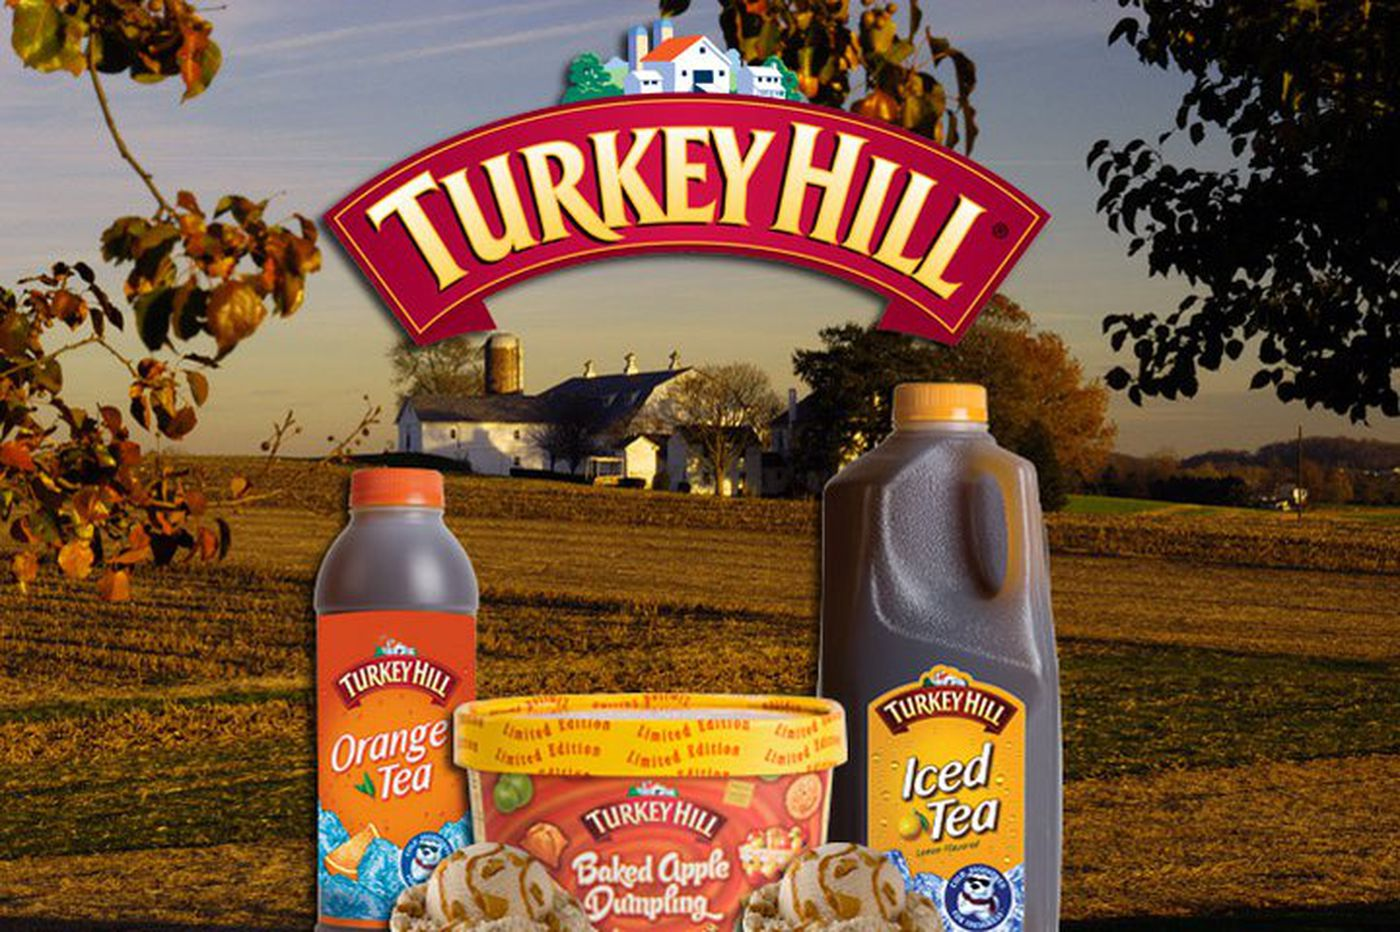 Turkey Hill Dairy, maker of popular iced tea, ice cream, sold to Texas firm